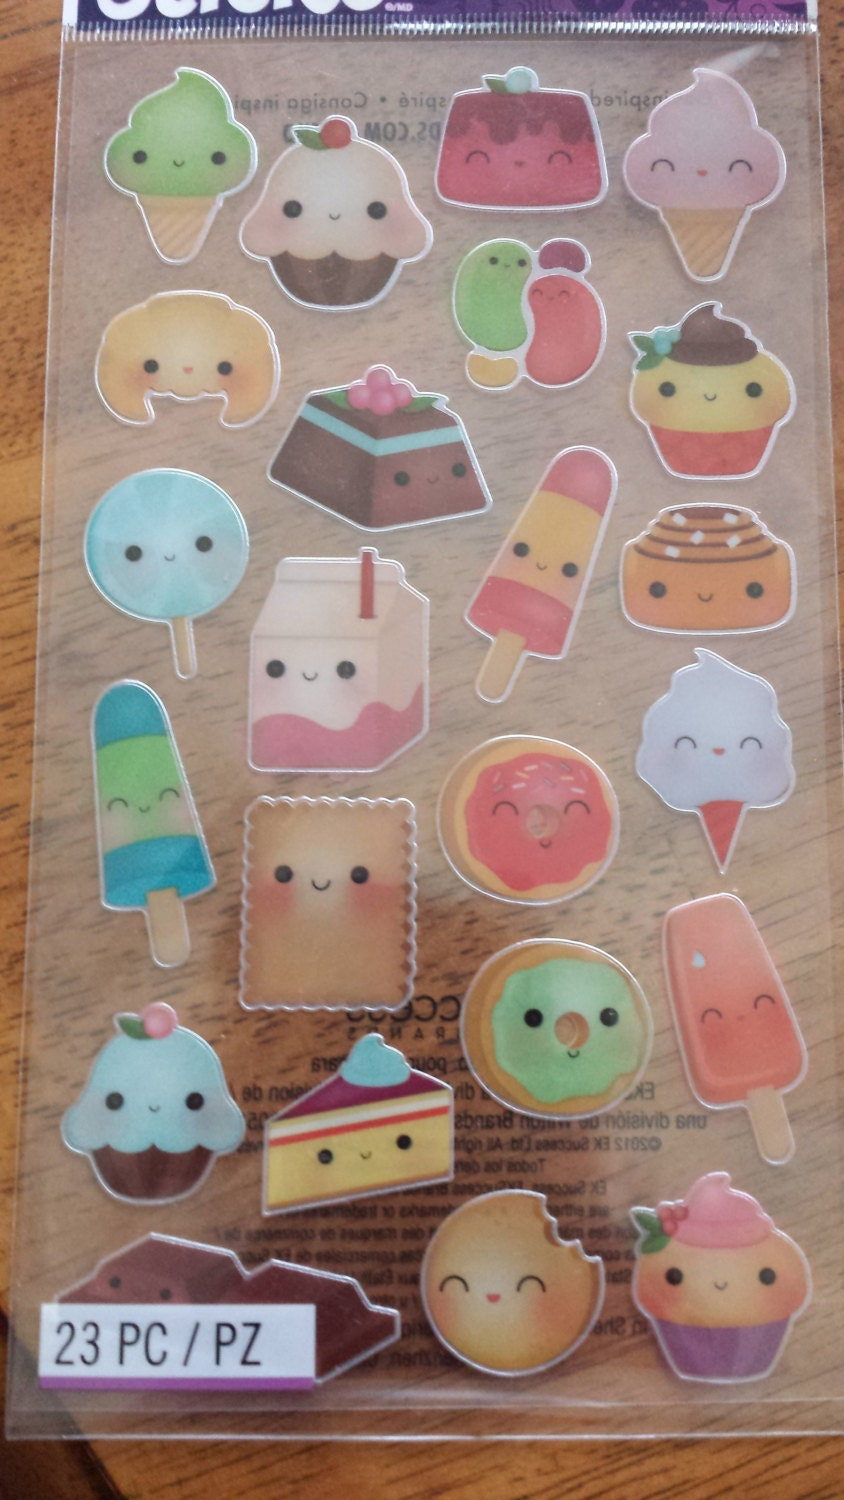 Cute Kawaii Food Stickers sheet of 23 stickers